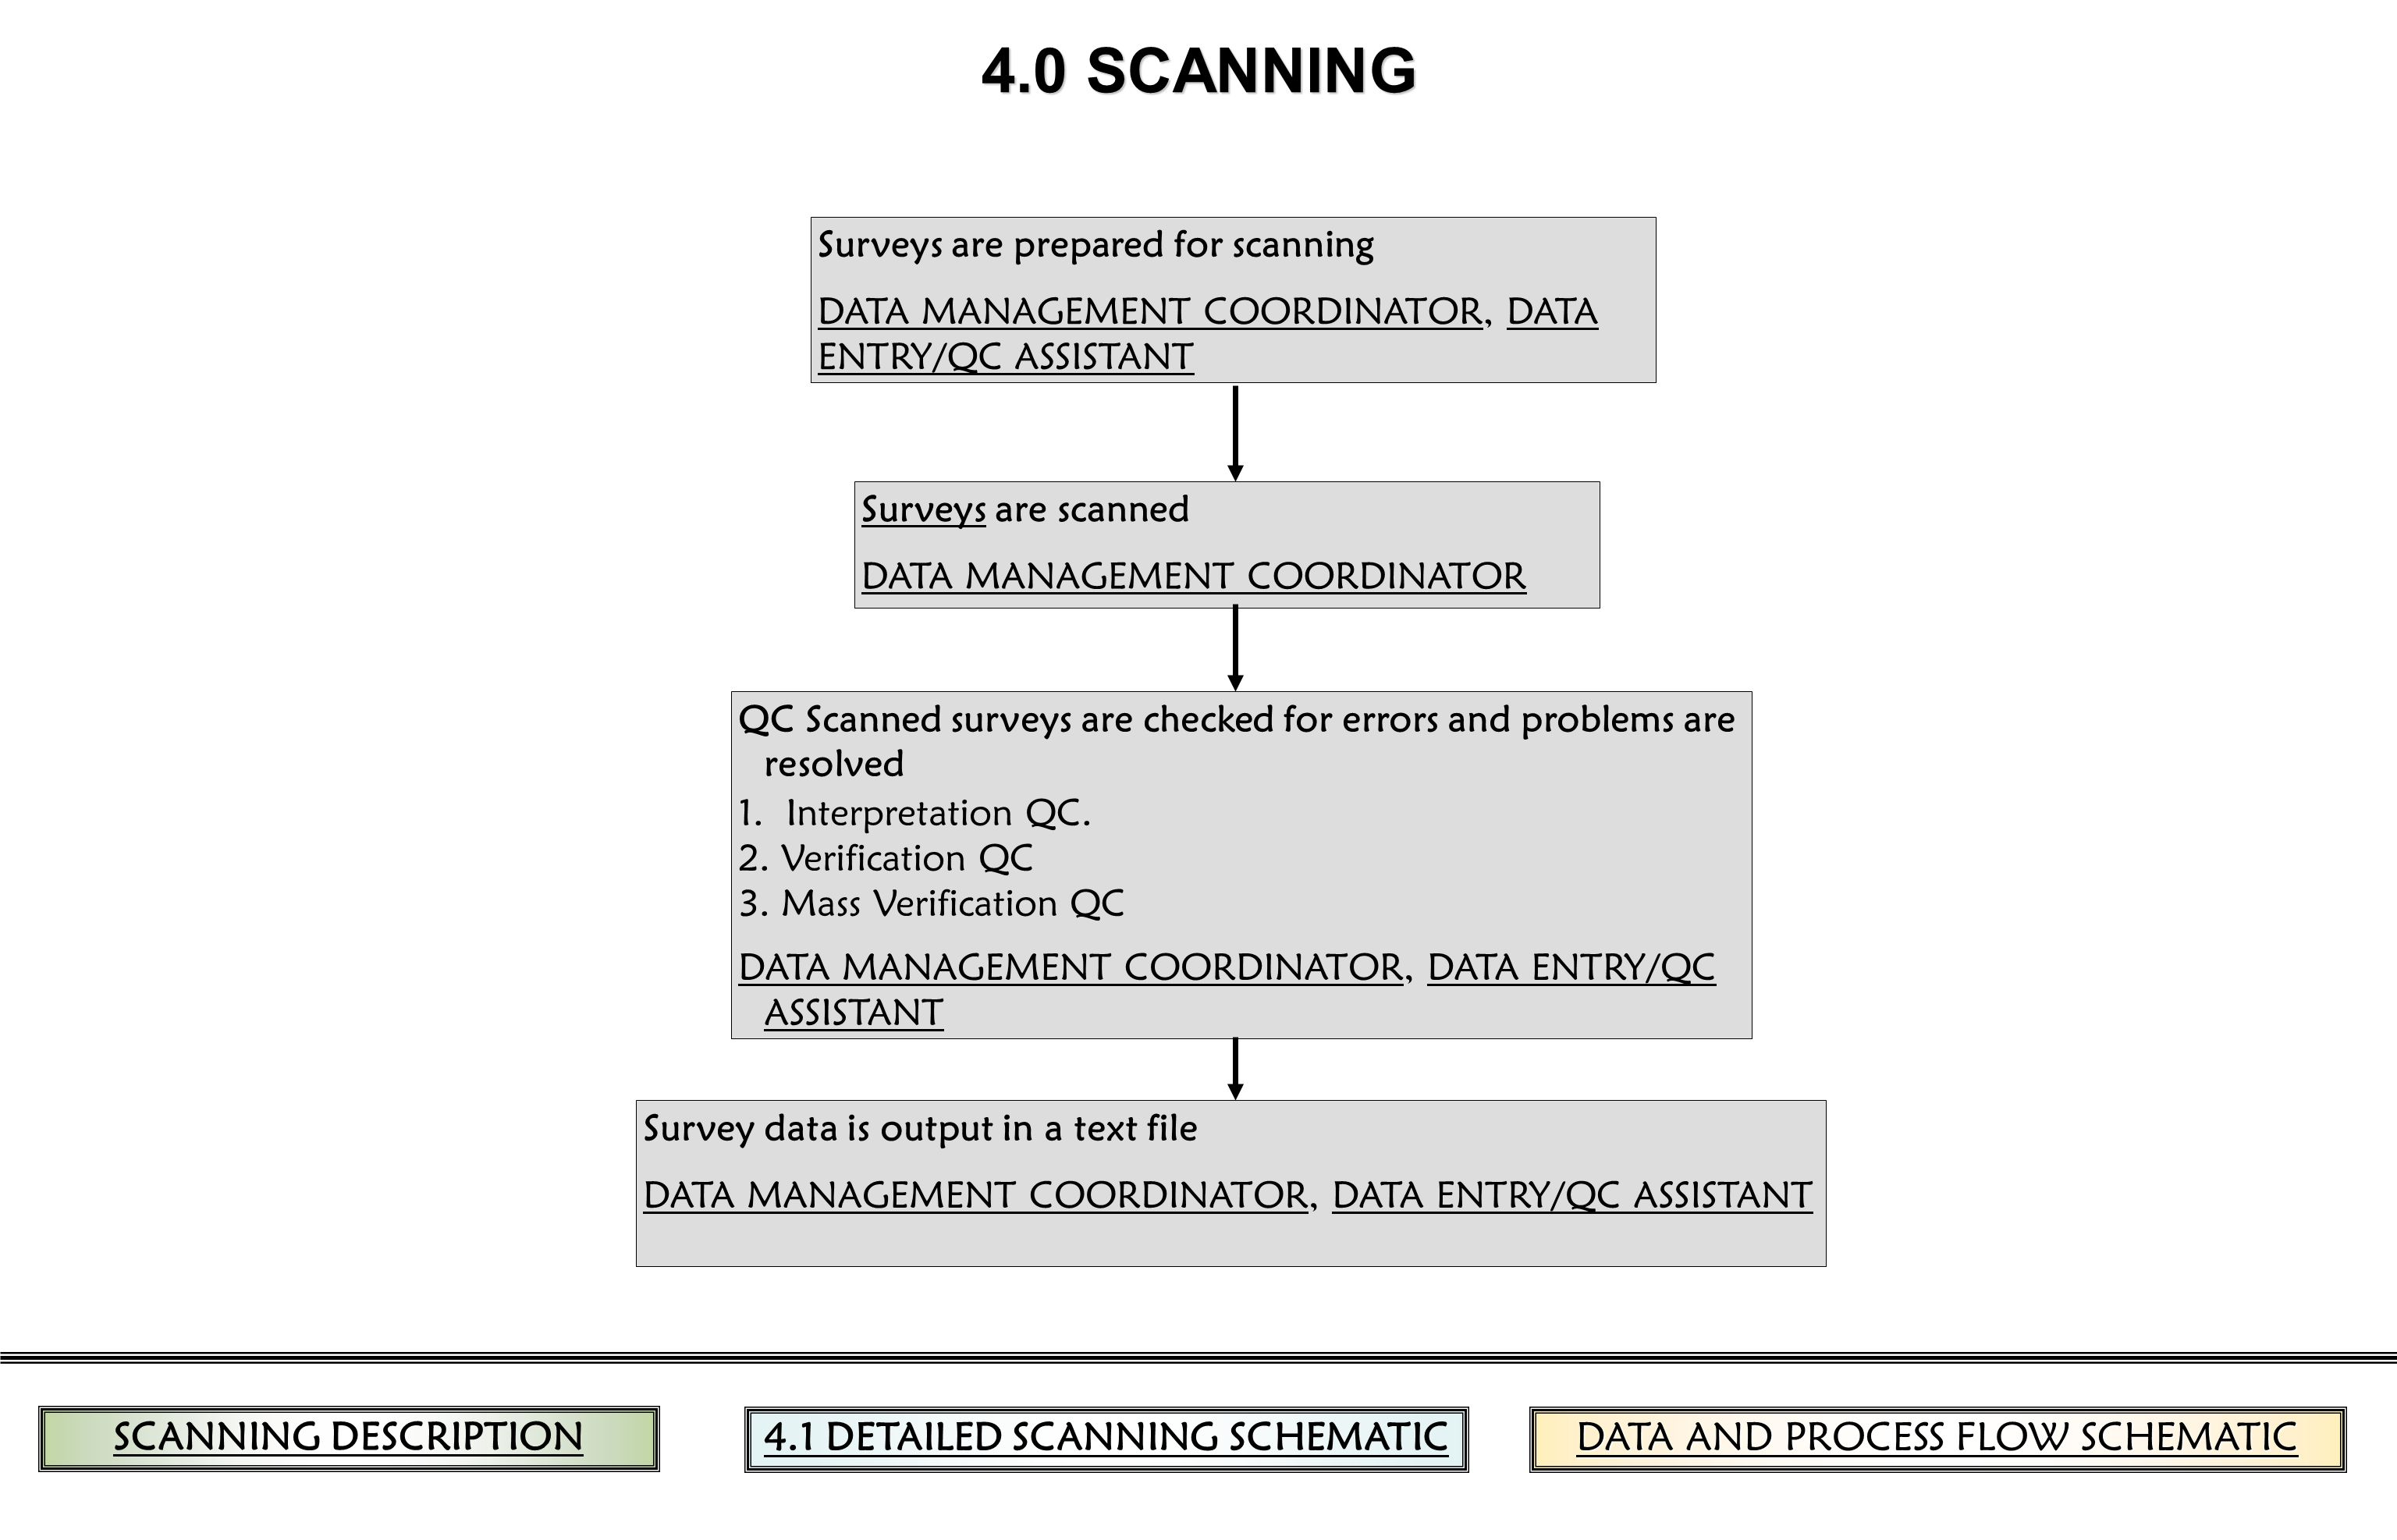 4.0 SCANNING Surveys are prepared for scanning DATA MANAGEMENT COORDINATORDATA MANAGEMENT COORDINATOR, DATA ENTRY/QC ASSISTANTDATA ENTRY/QC ASSISTANT SurveysSurveys are scanned DATA MANAGEMENT COORDINATOR QC Scanned surveys are checked for errors and problems are resolved 1.